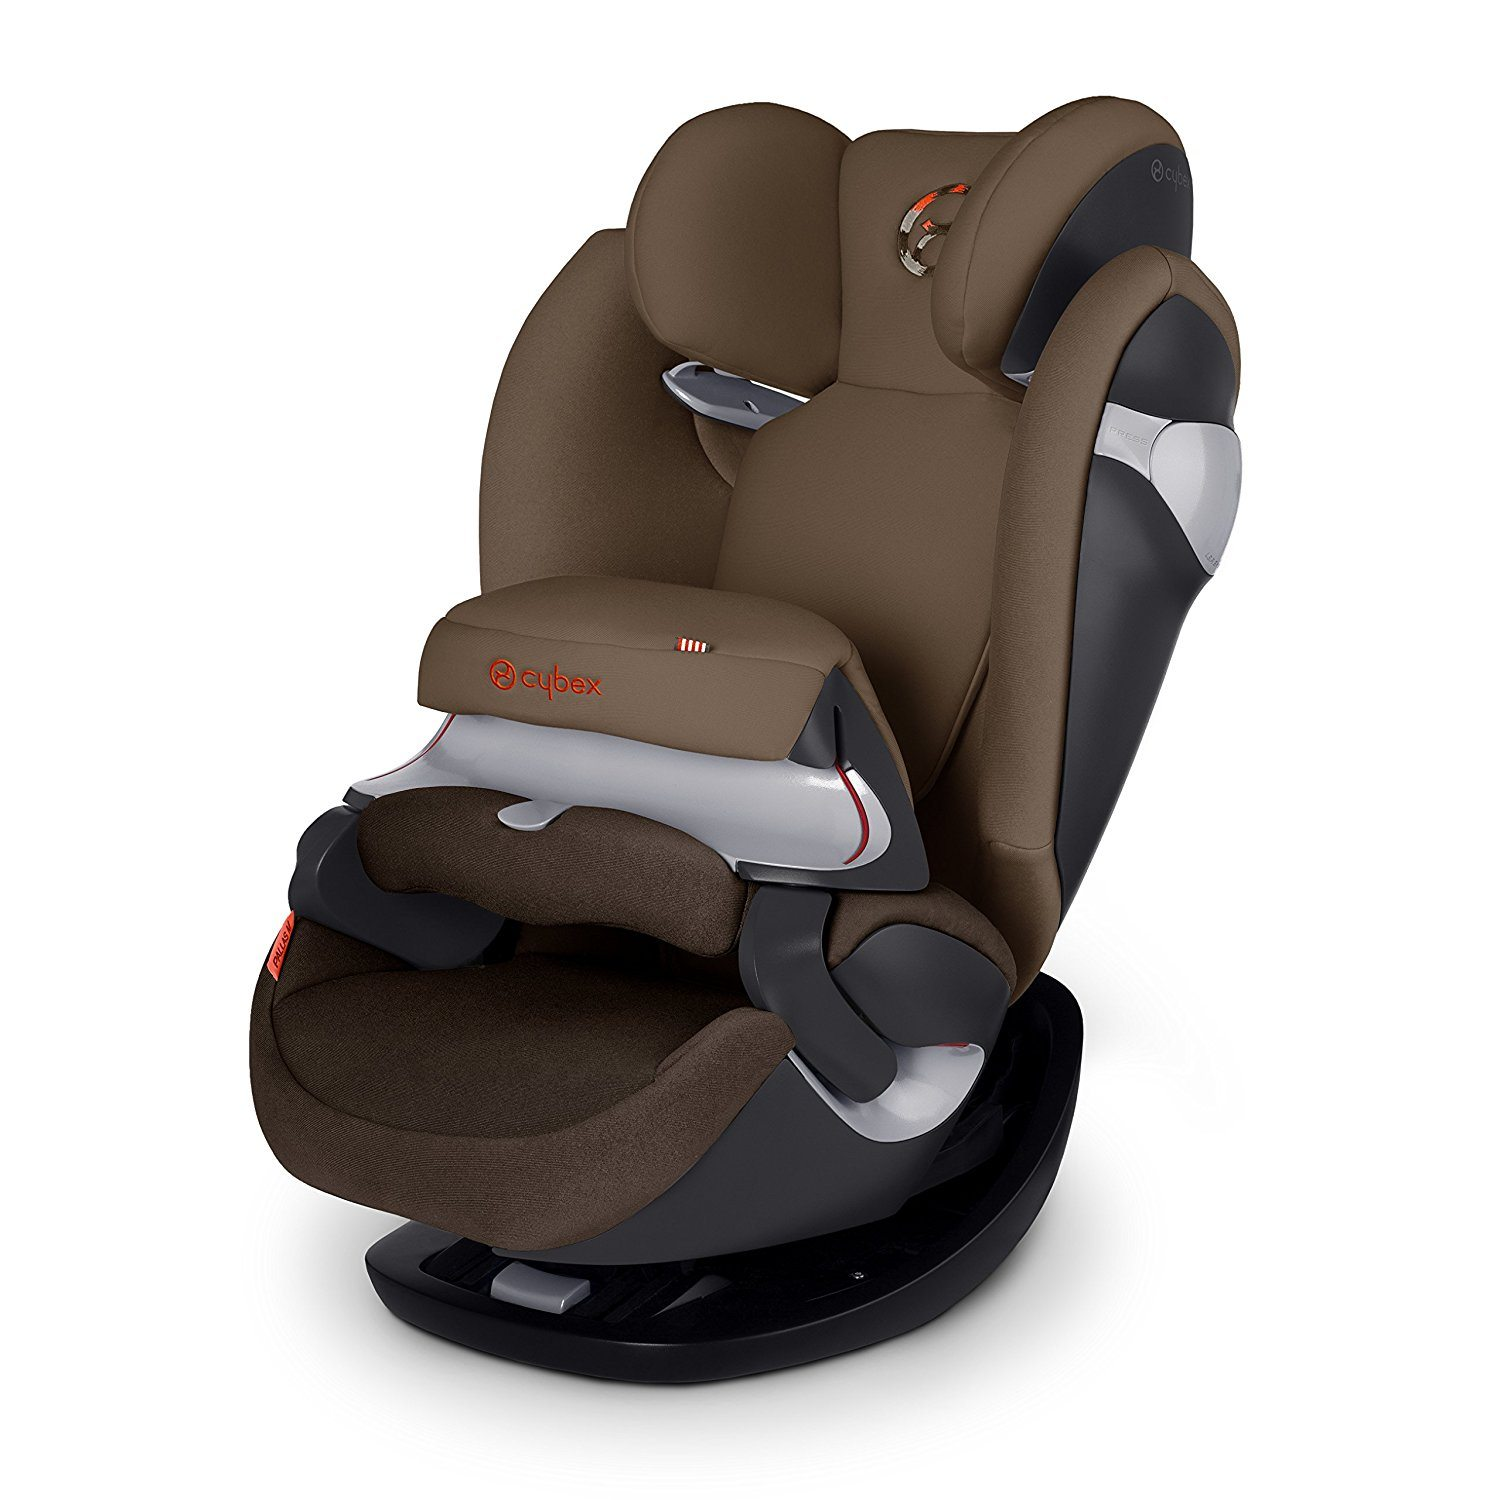 Autositz Cybex Solution Cybex Kindersitz Expertentesten